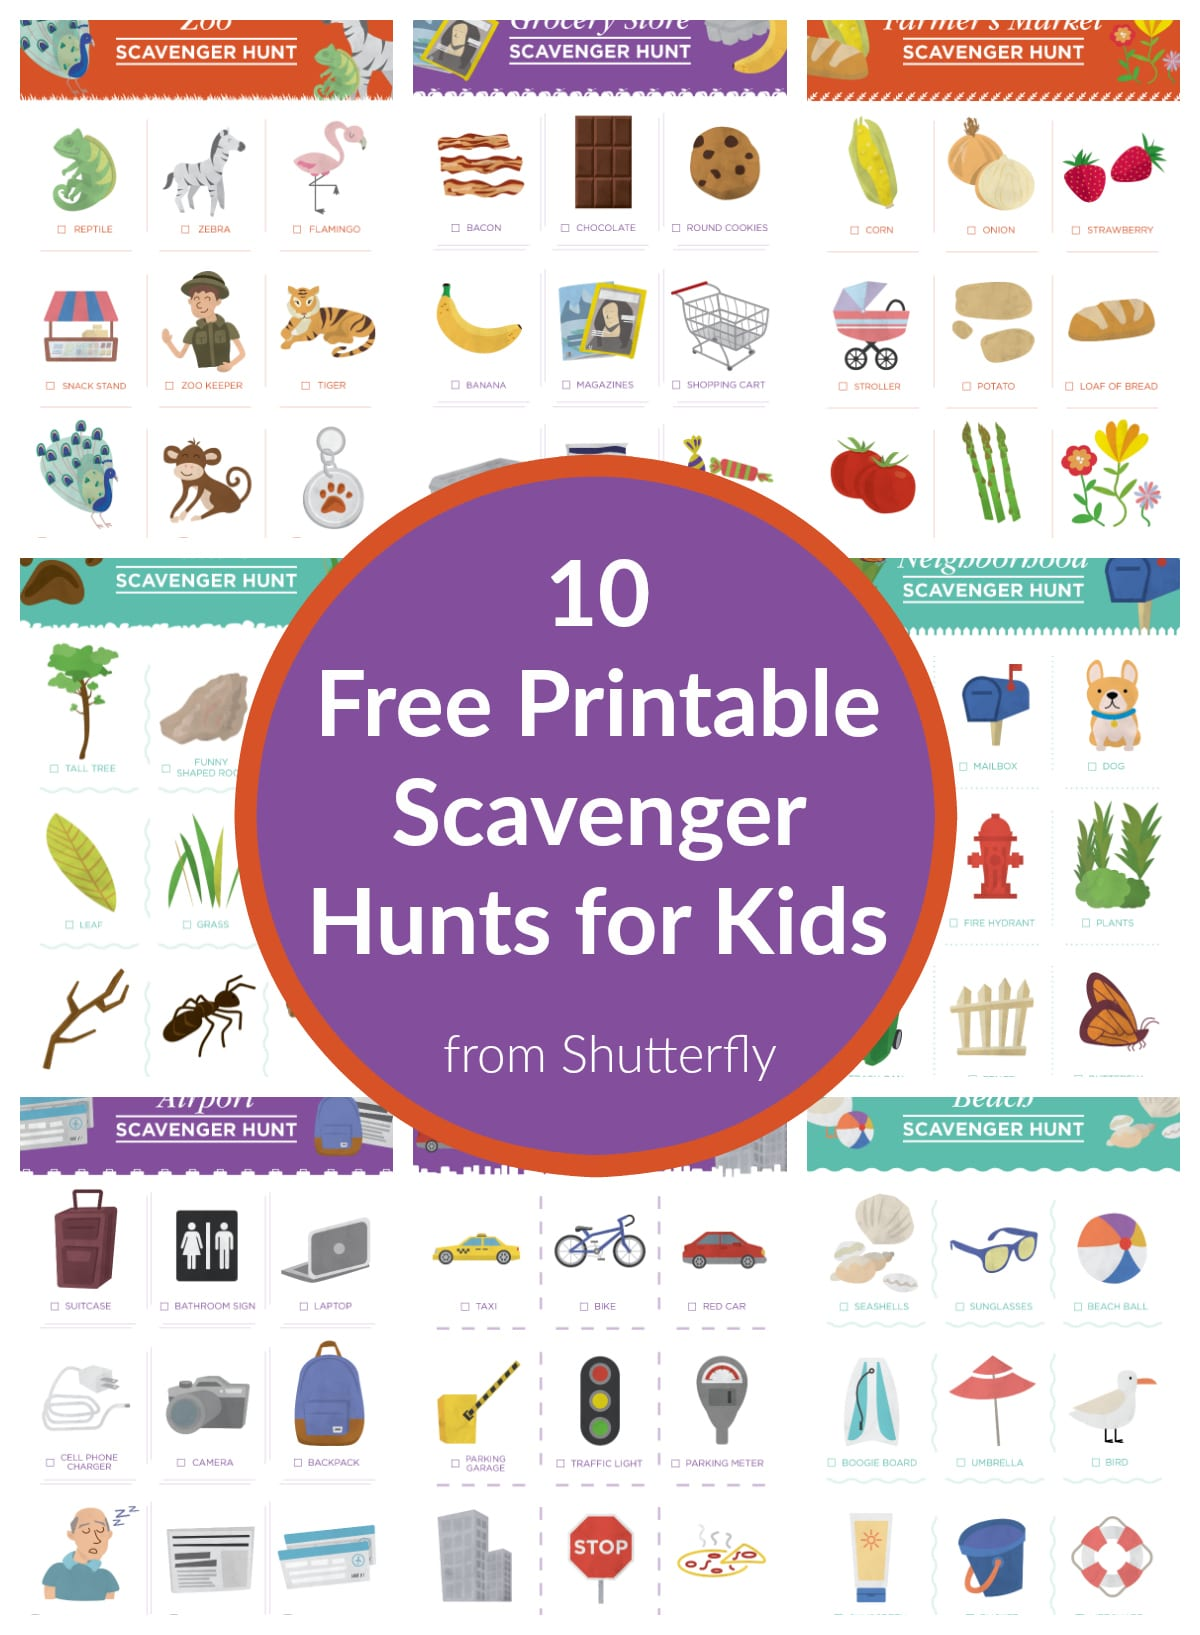 photo relating to Printable Scavenger Hunt for Kids identified as 10 Free of charge Scavenger Hunt Printables for Little ones against Shutterfly